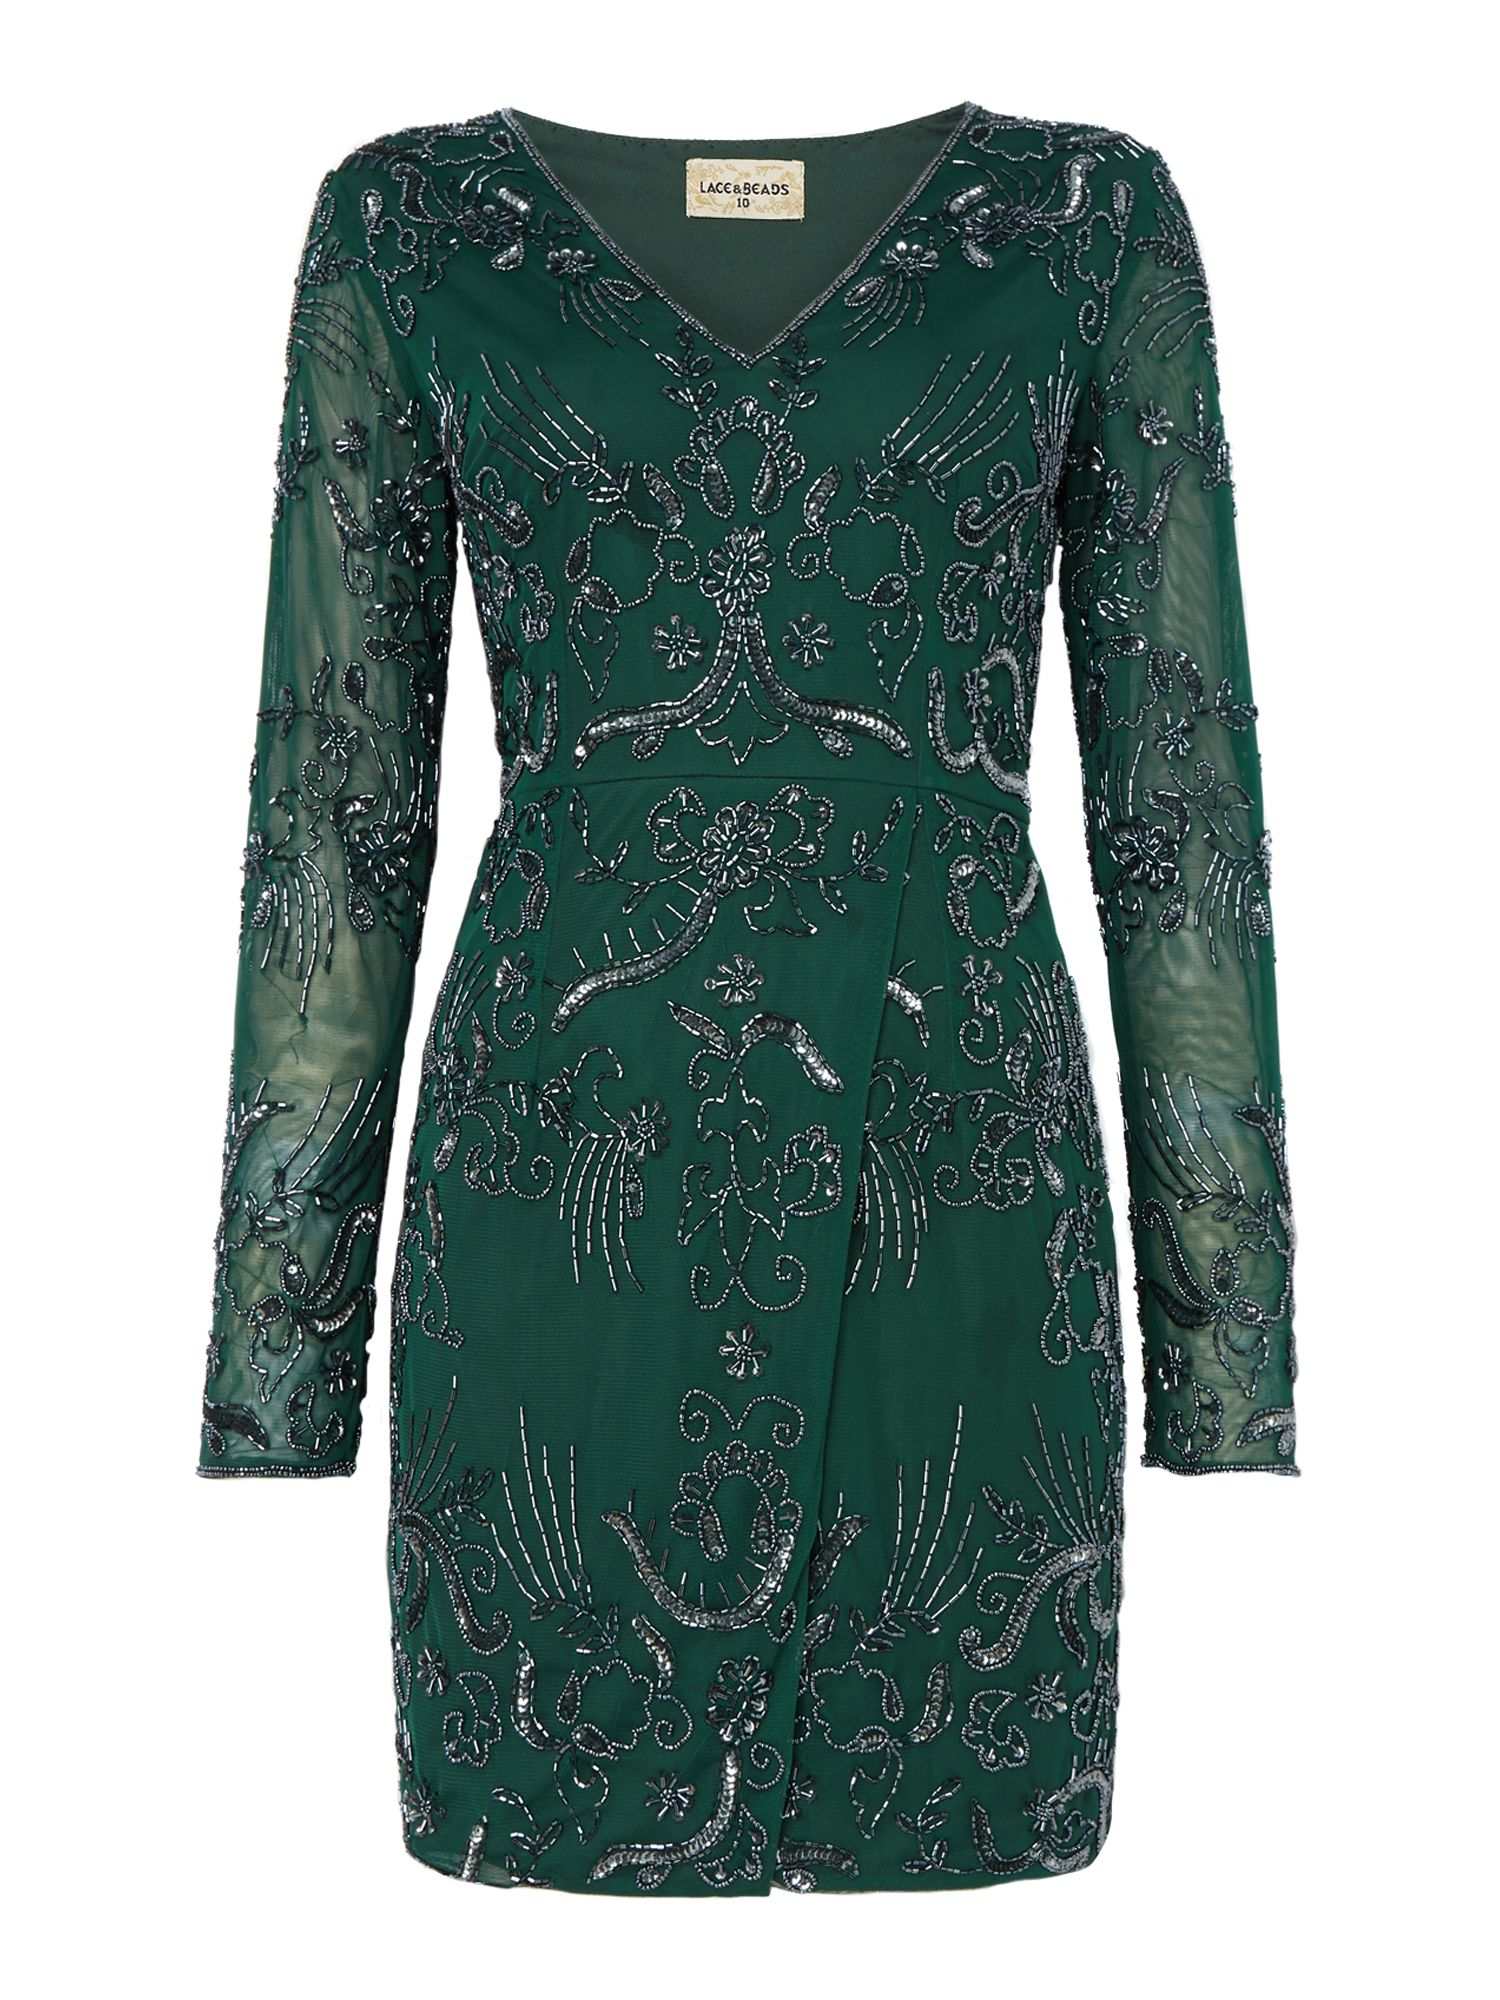 Lace and Beads Lace and Beads Milan v neck embellished bodycon dress, Bottle Green